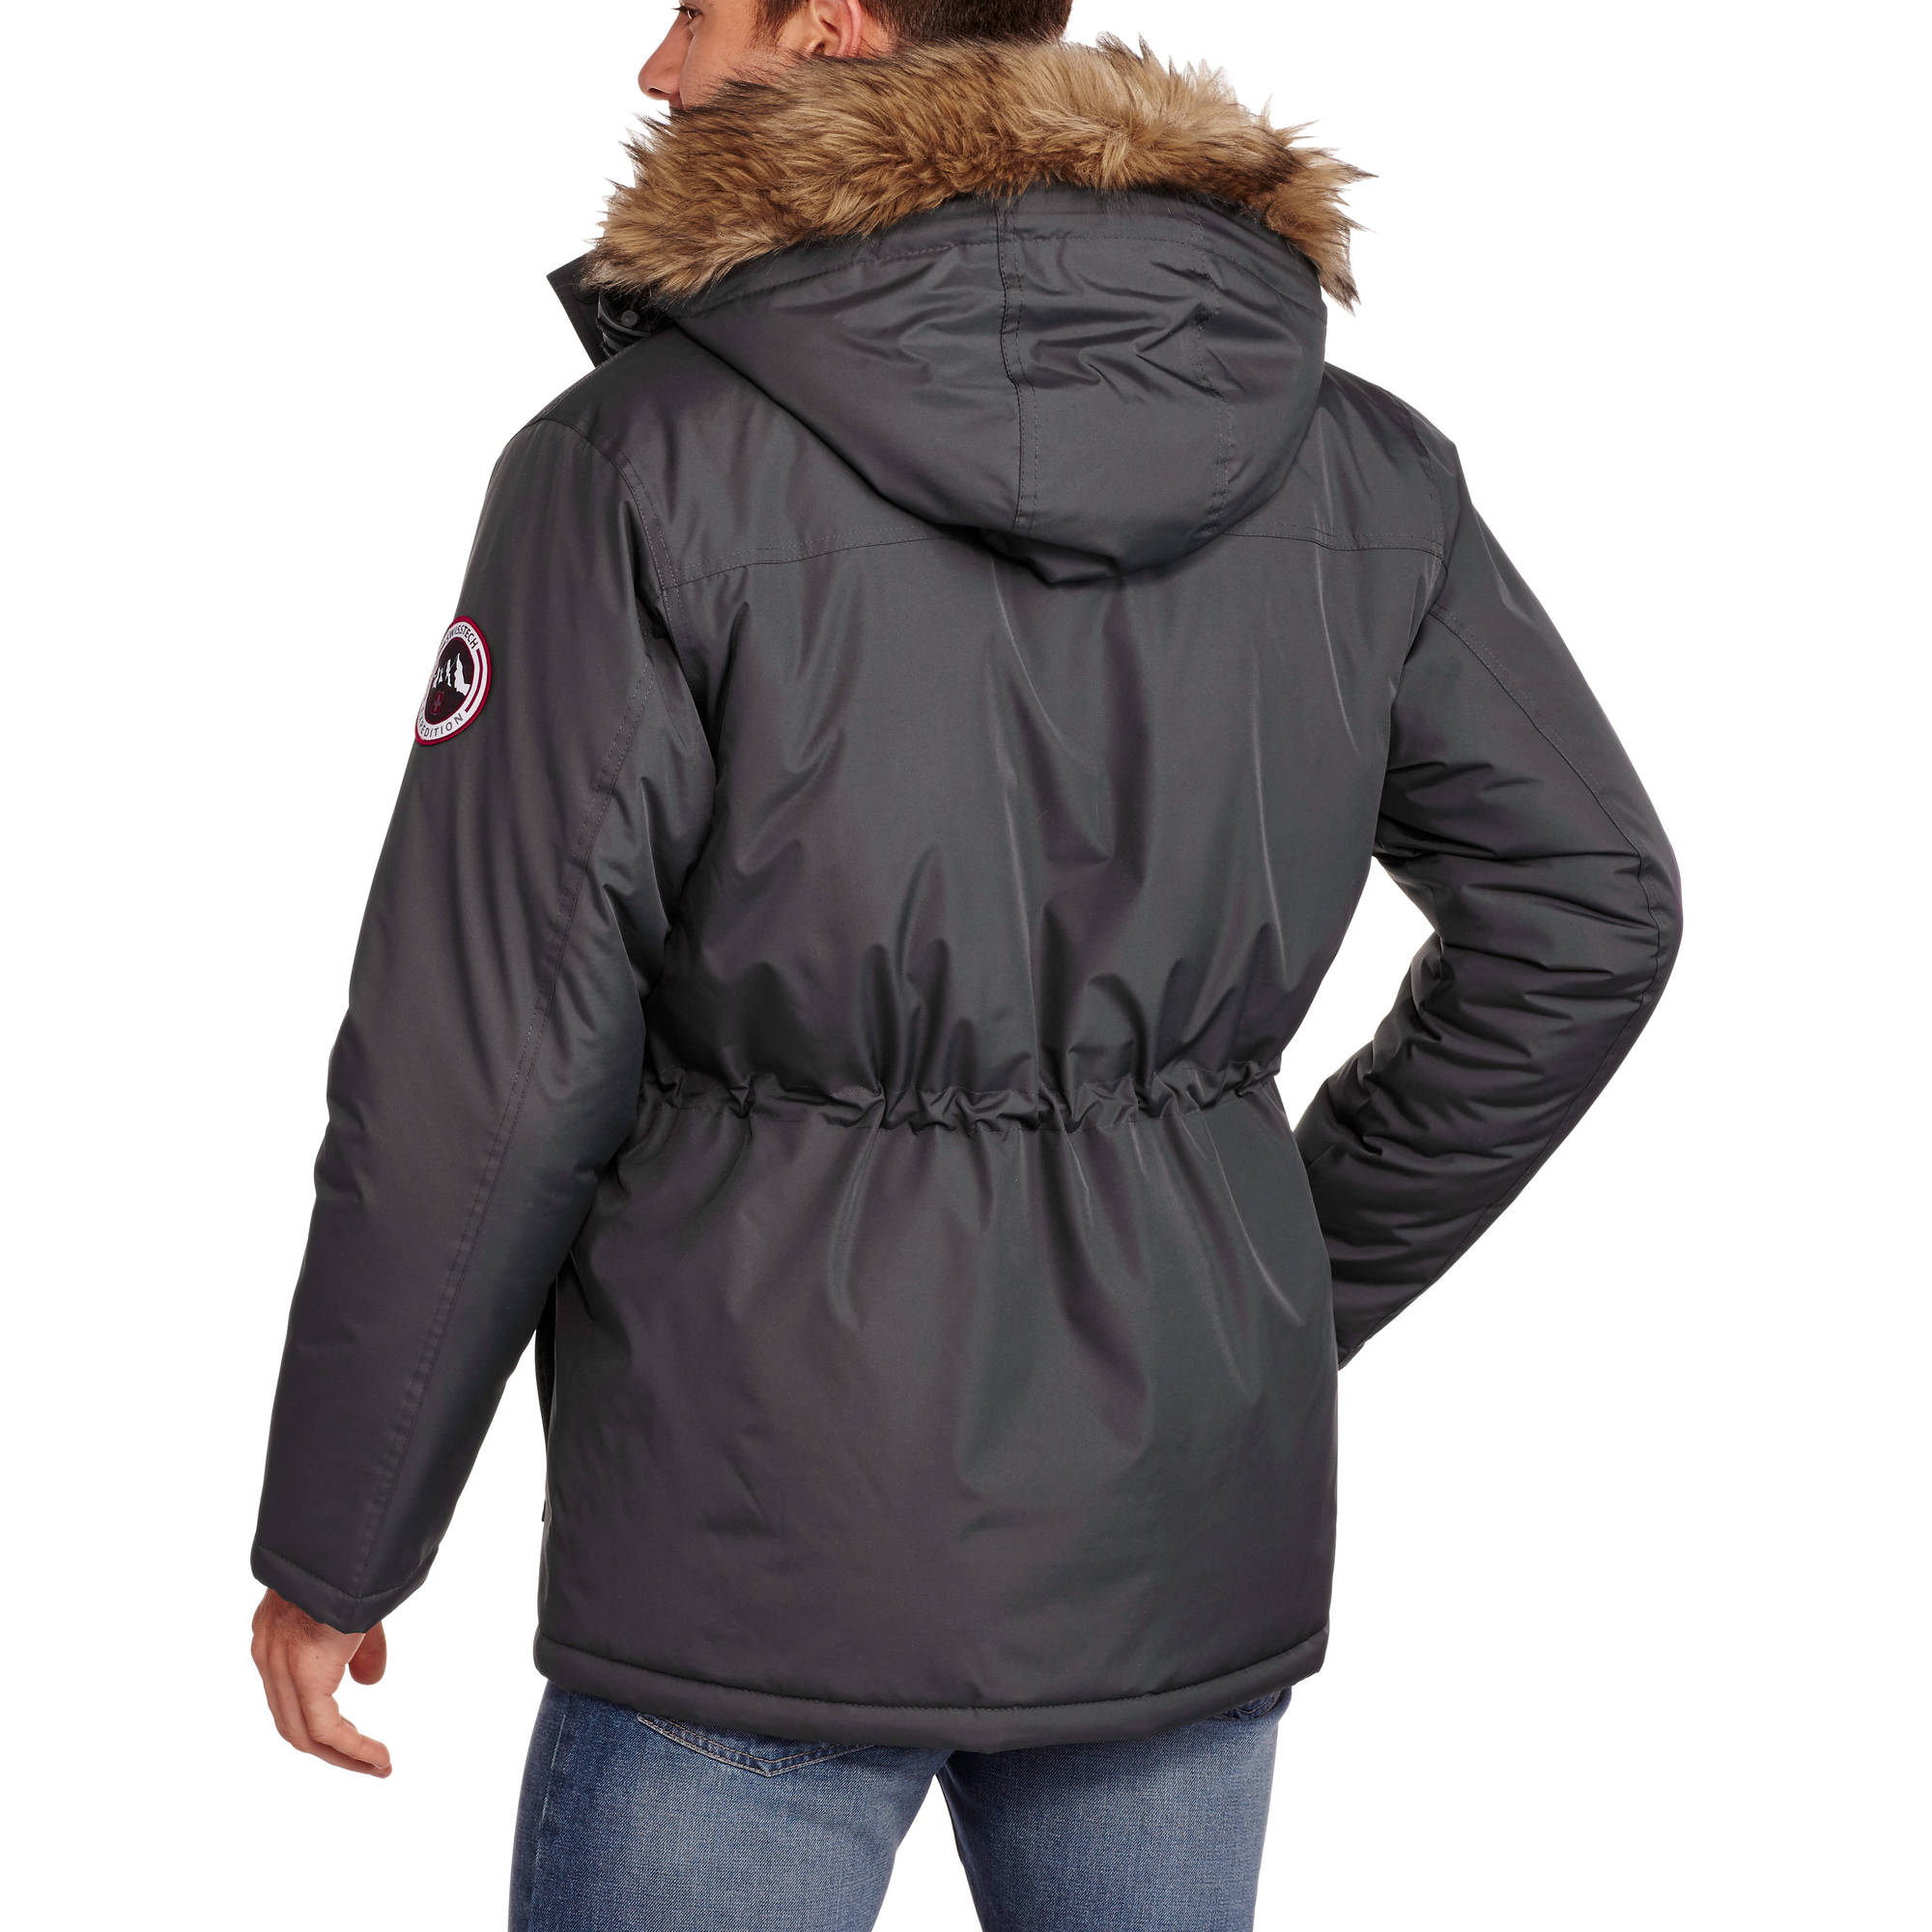 Swiss Tech Men's Heavy Weight Parka Jacket - Walmart.com